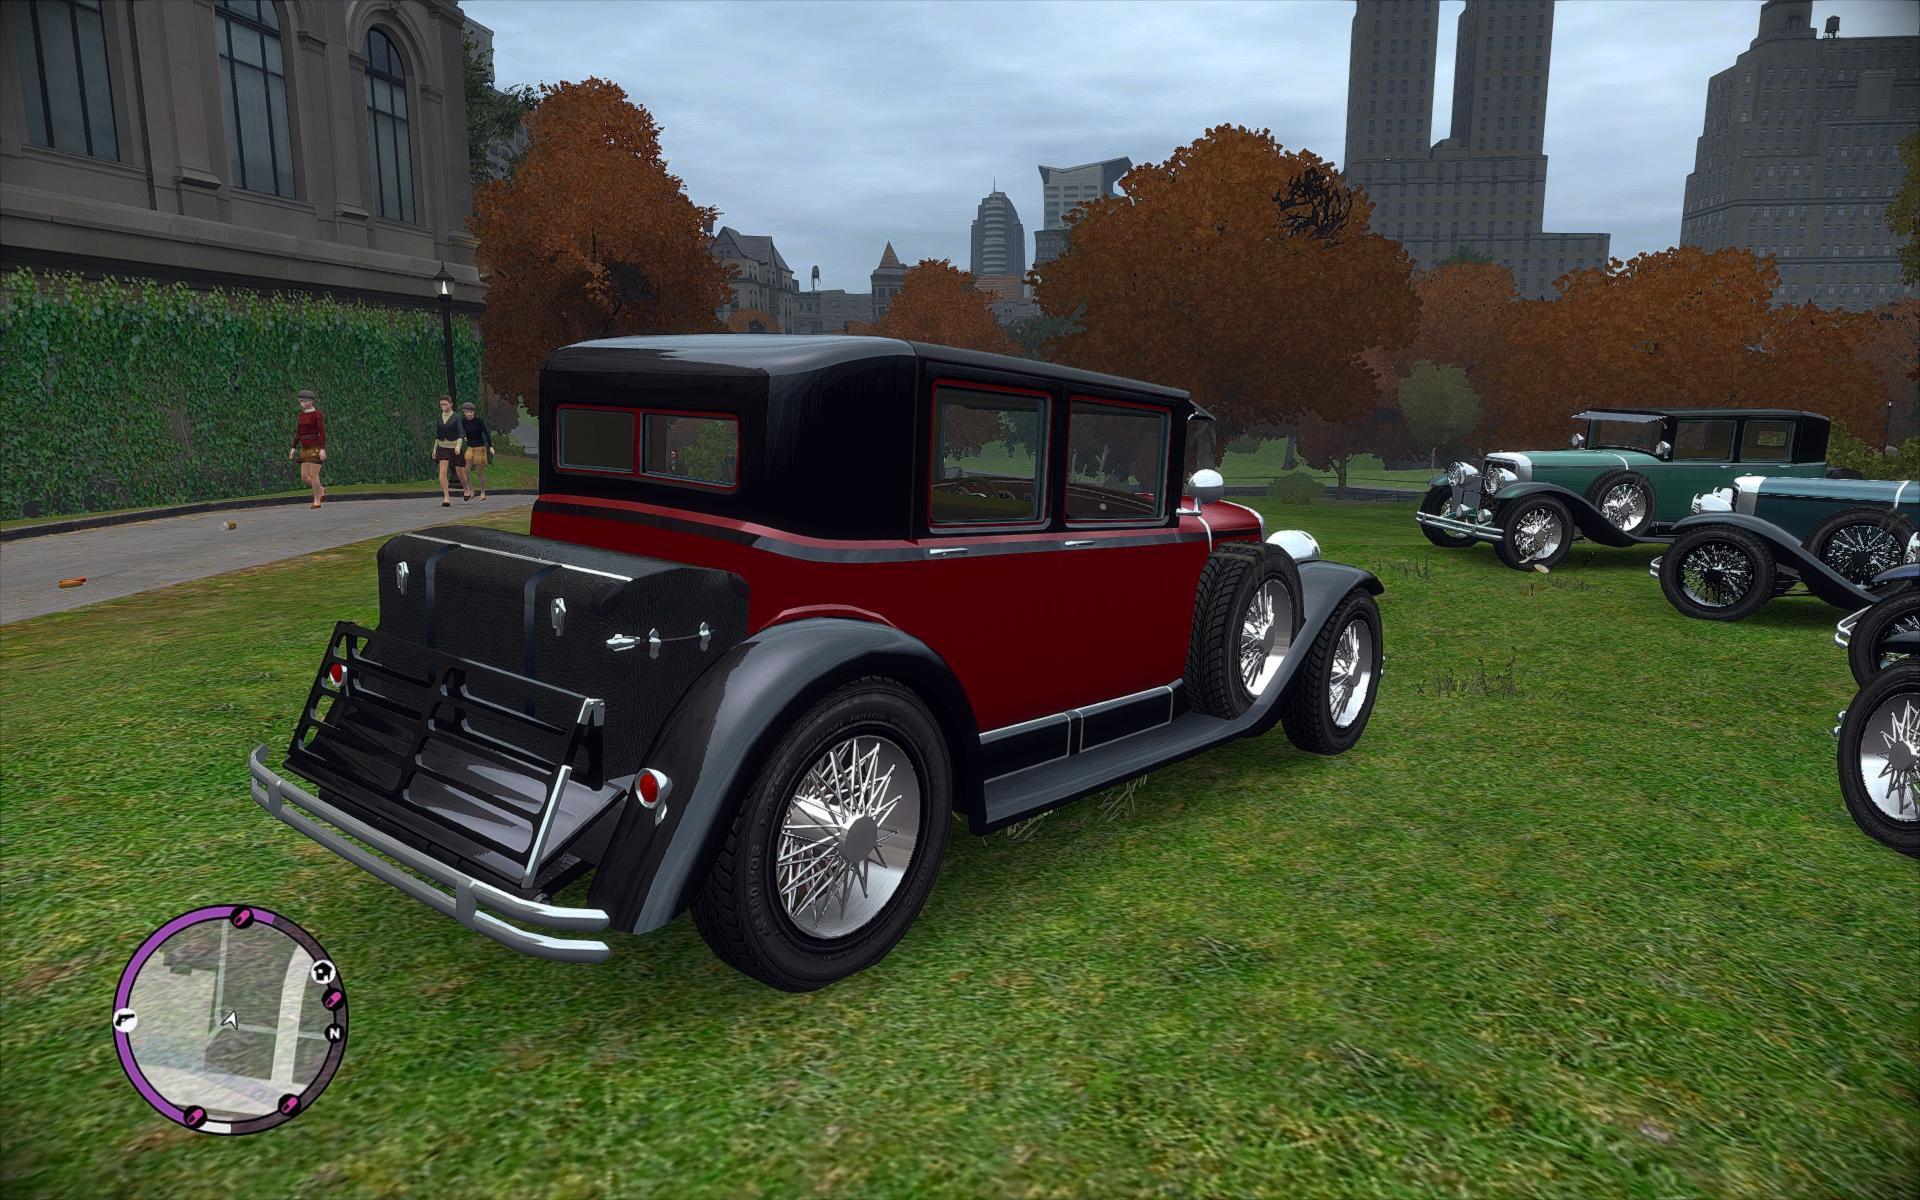 gta iv albany roosevelt vehicules pour gta iv sur gta modding. Black Bedroom Furniture Sets. Home Design Ideas